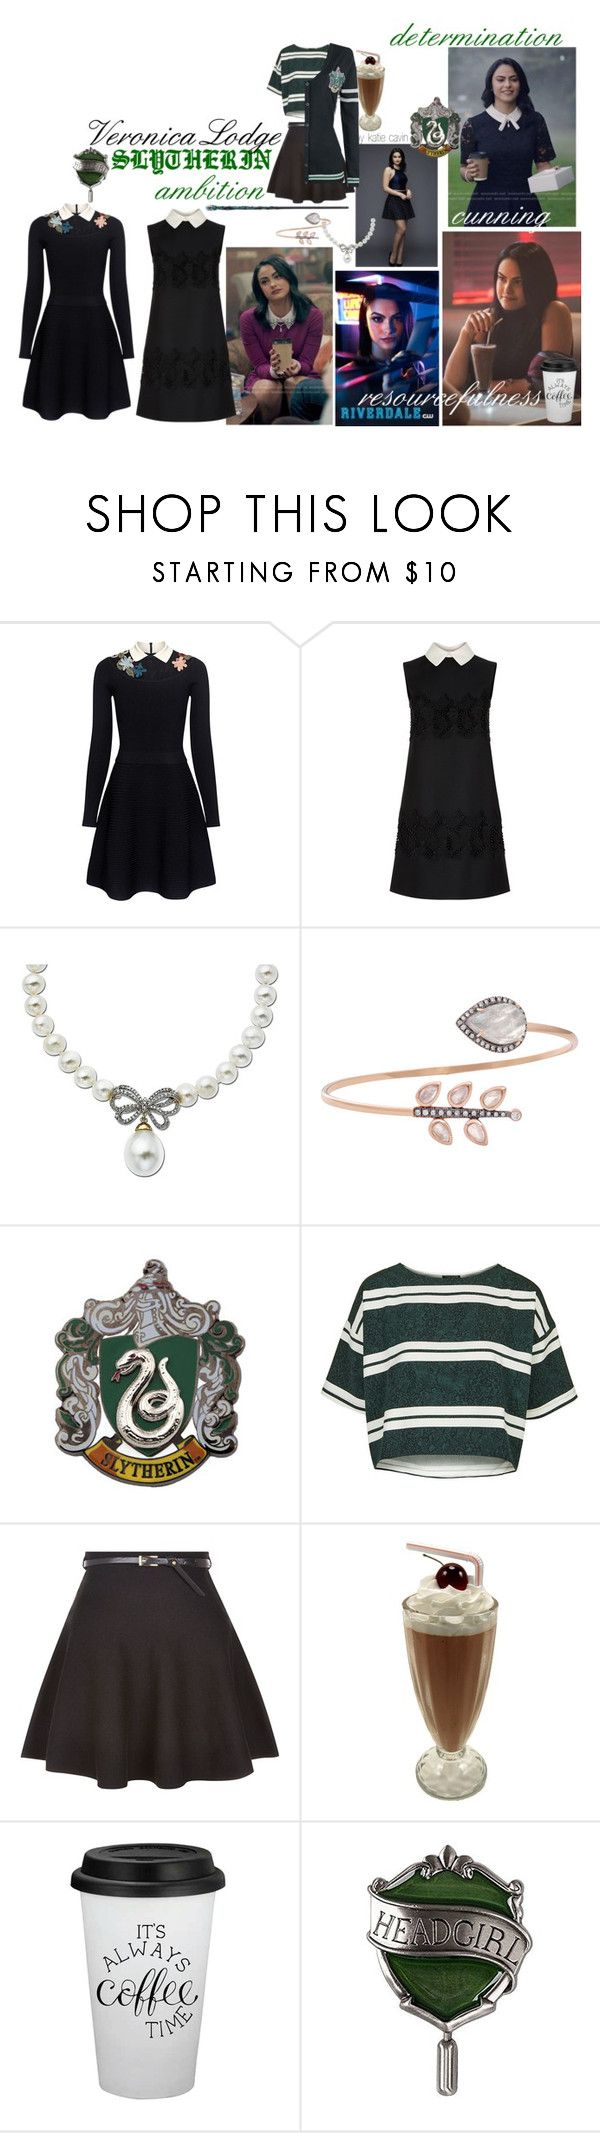 """Veronica Lodge 